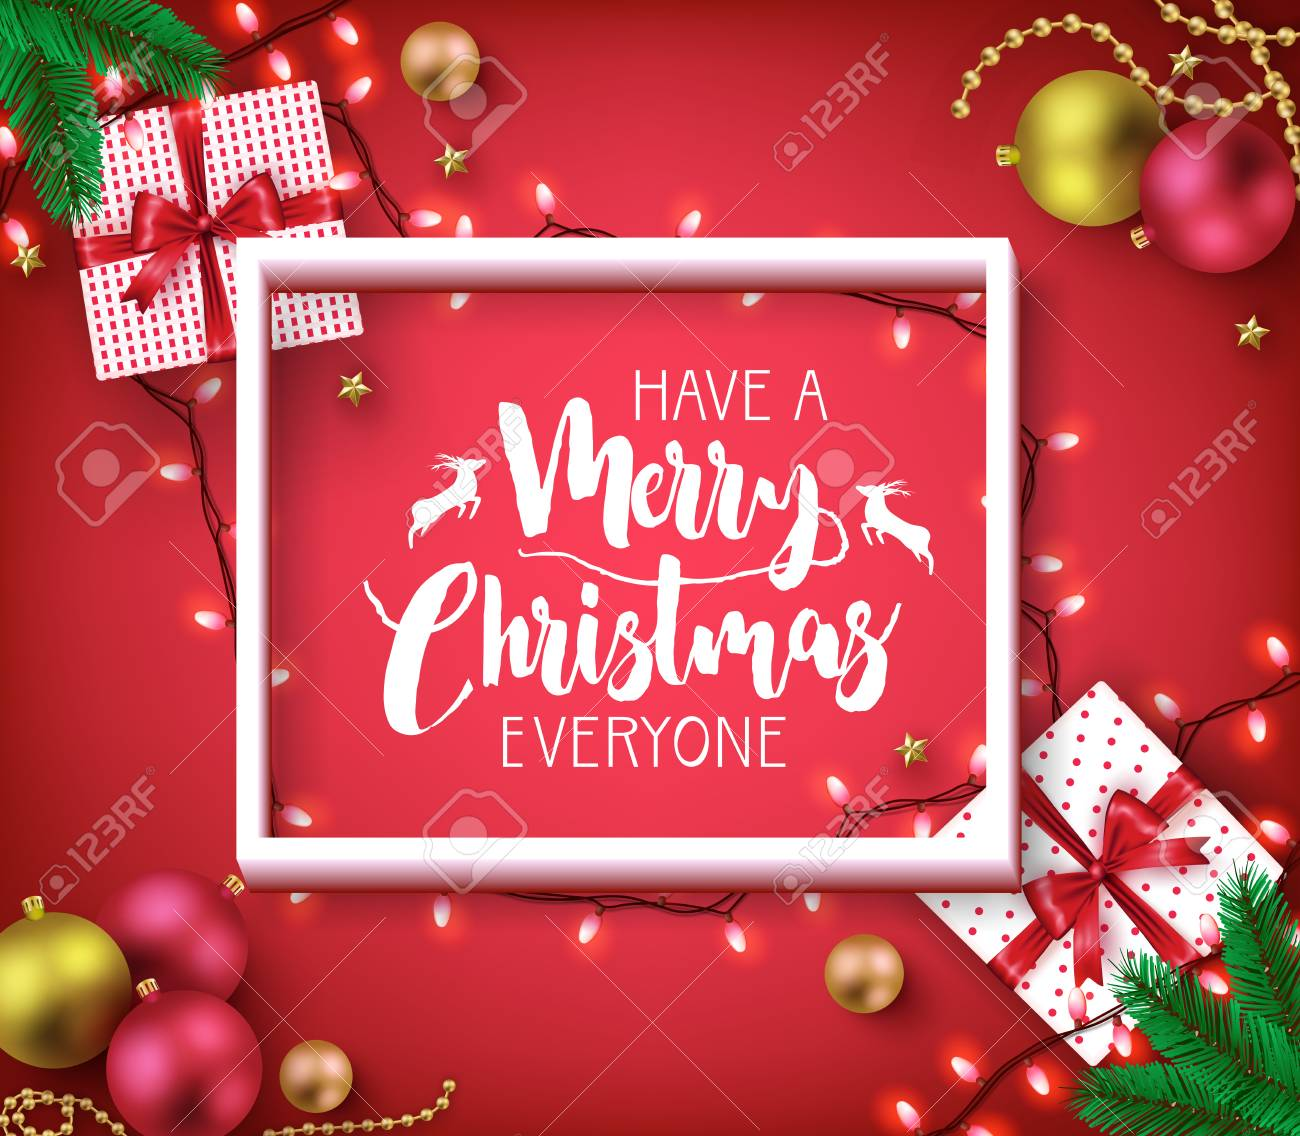 Merry Christmas Everyone.Have A Merry Christmas Everyone Greeting Typography Poster Inside